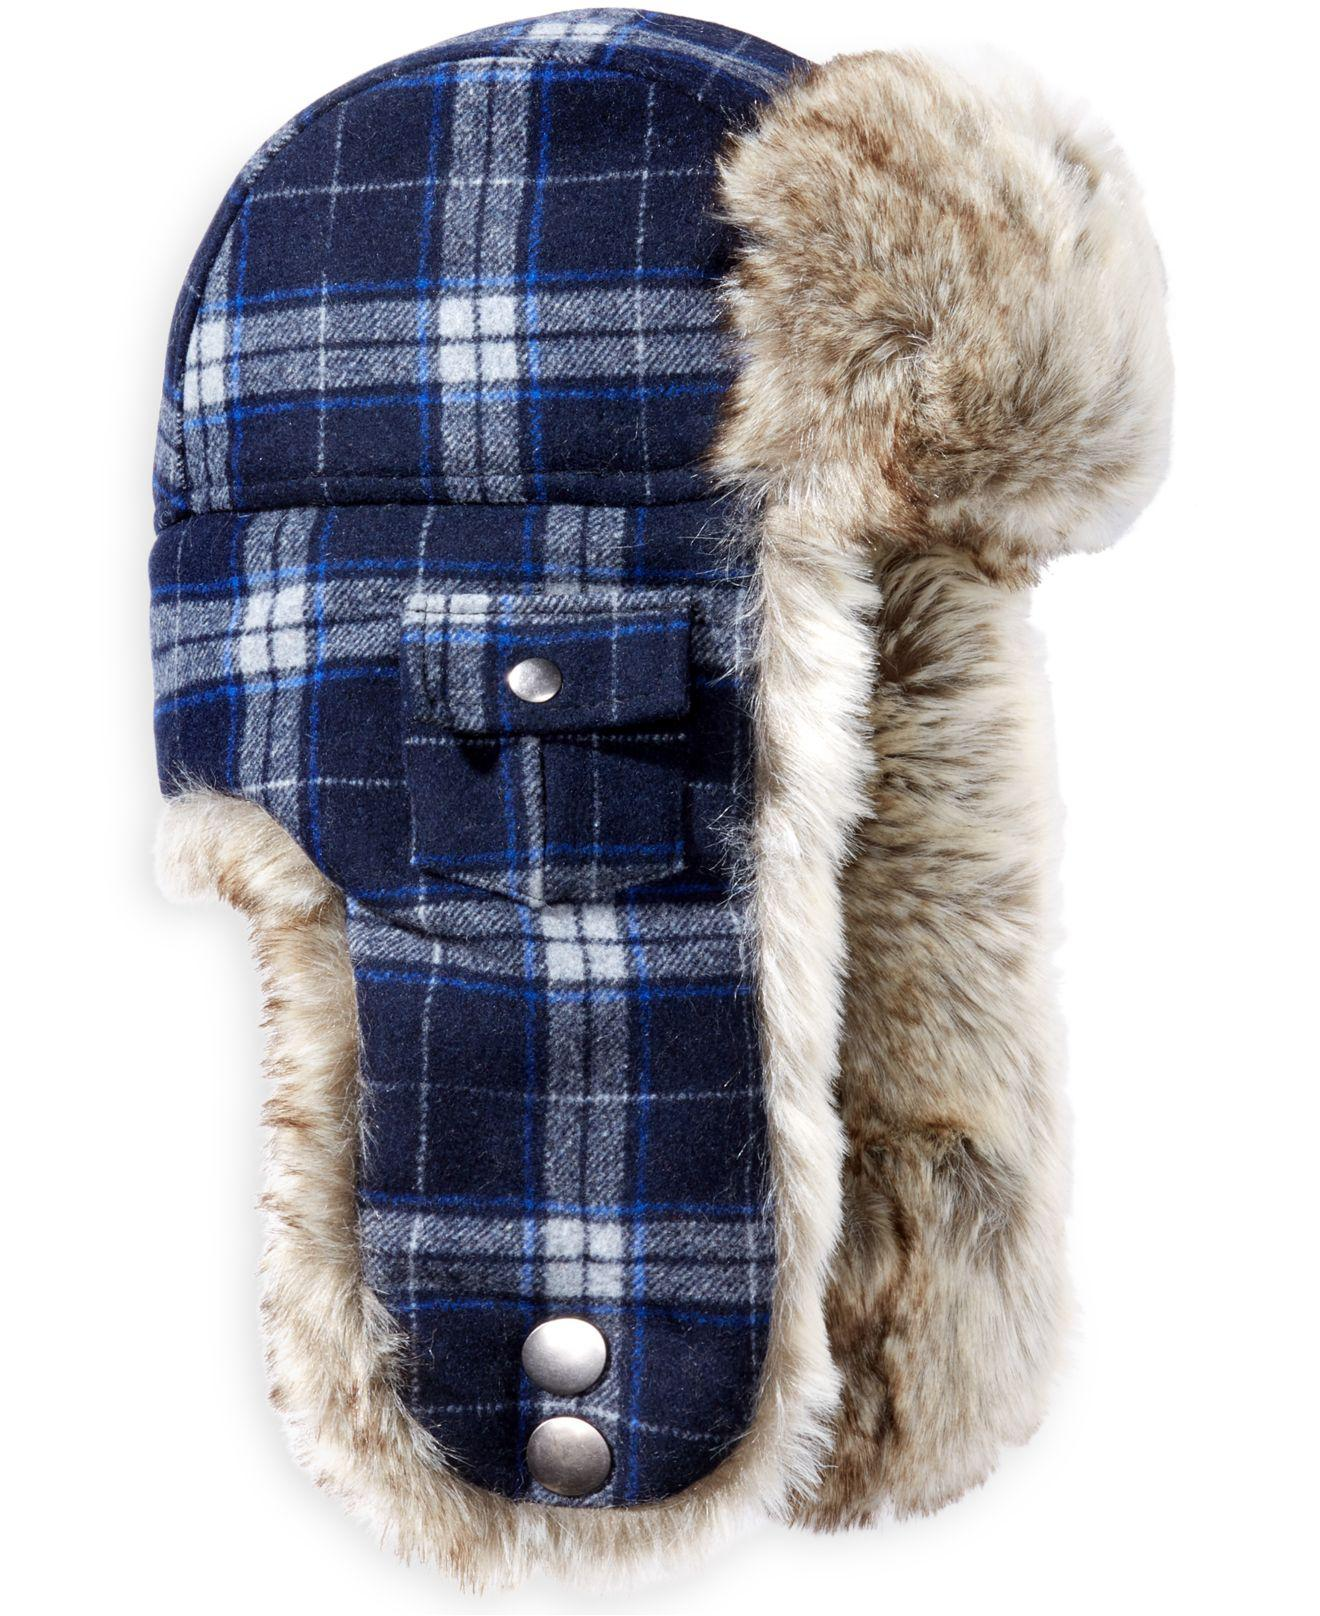 Lyst - Woolrich Plaid Arctic Trapper Hat With Faux-fur Earflaps in ... 3905fce6d24